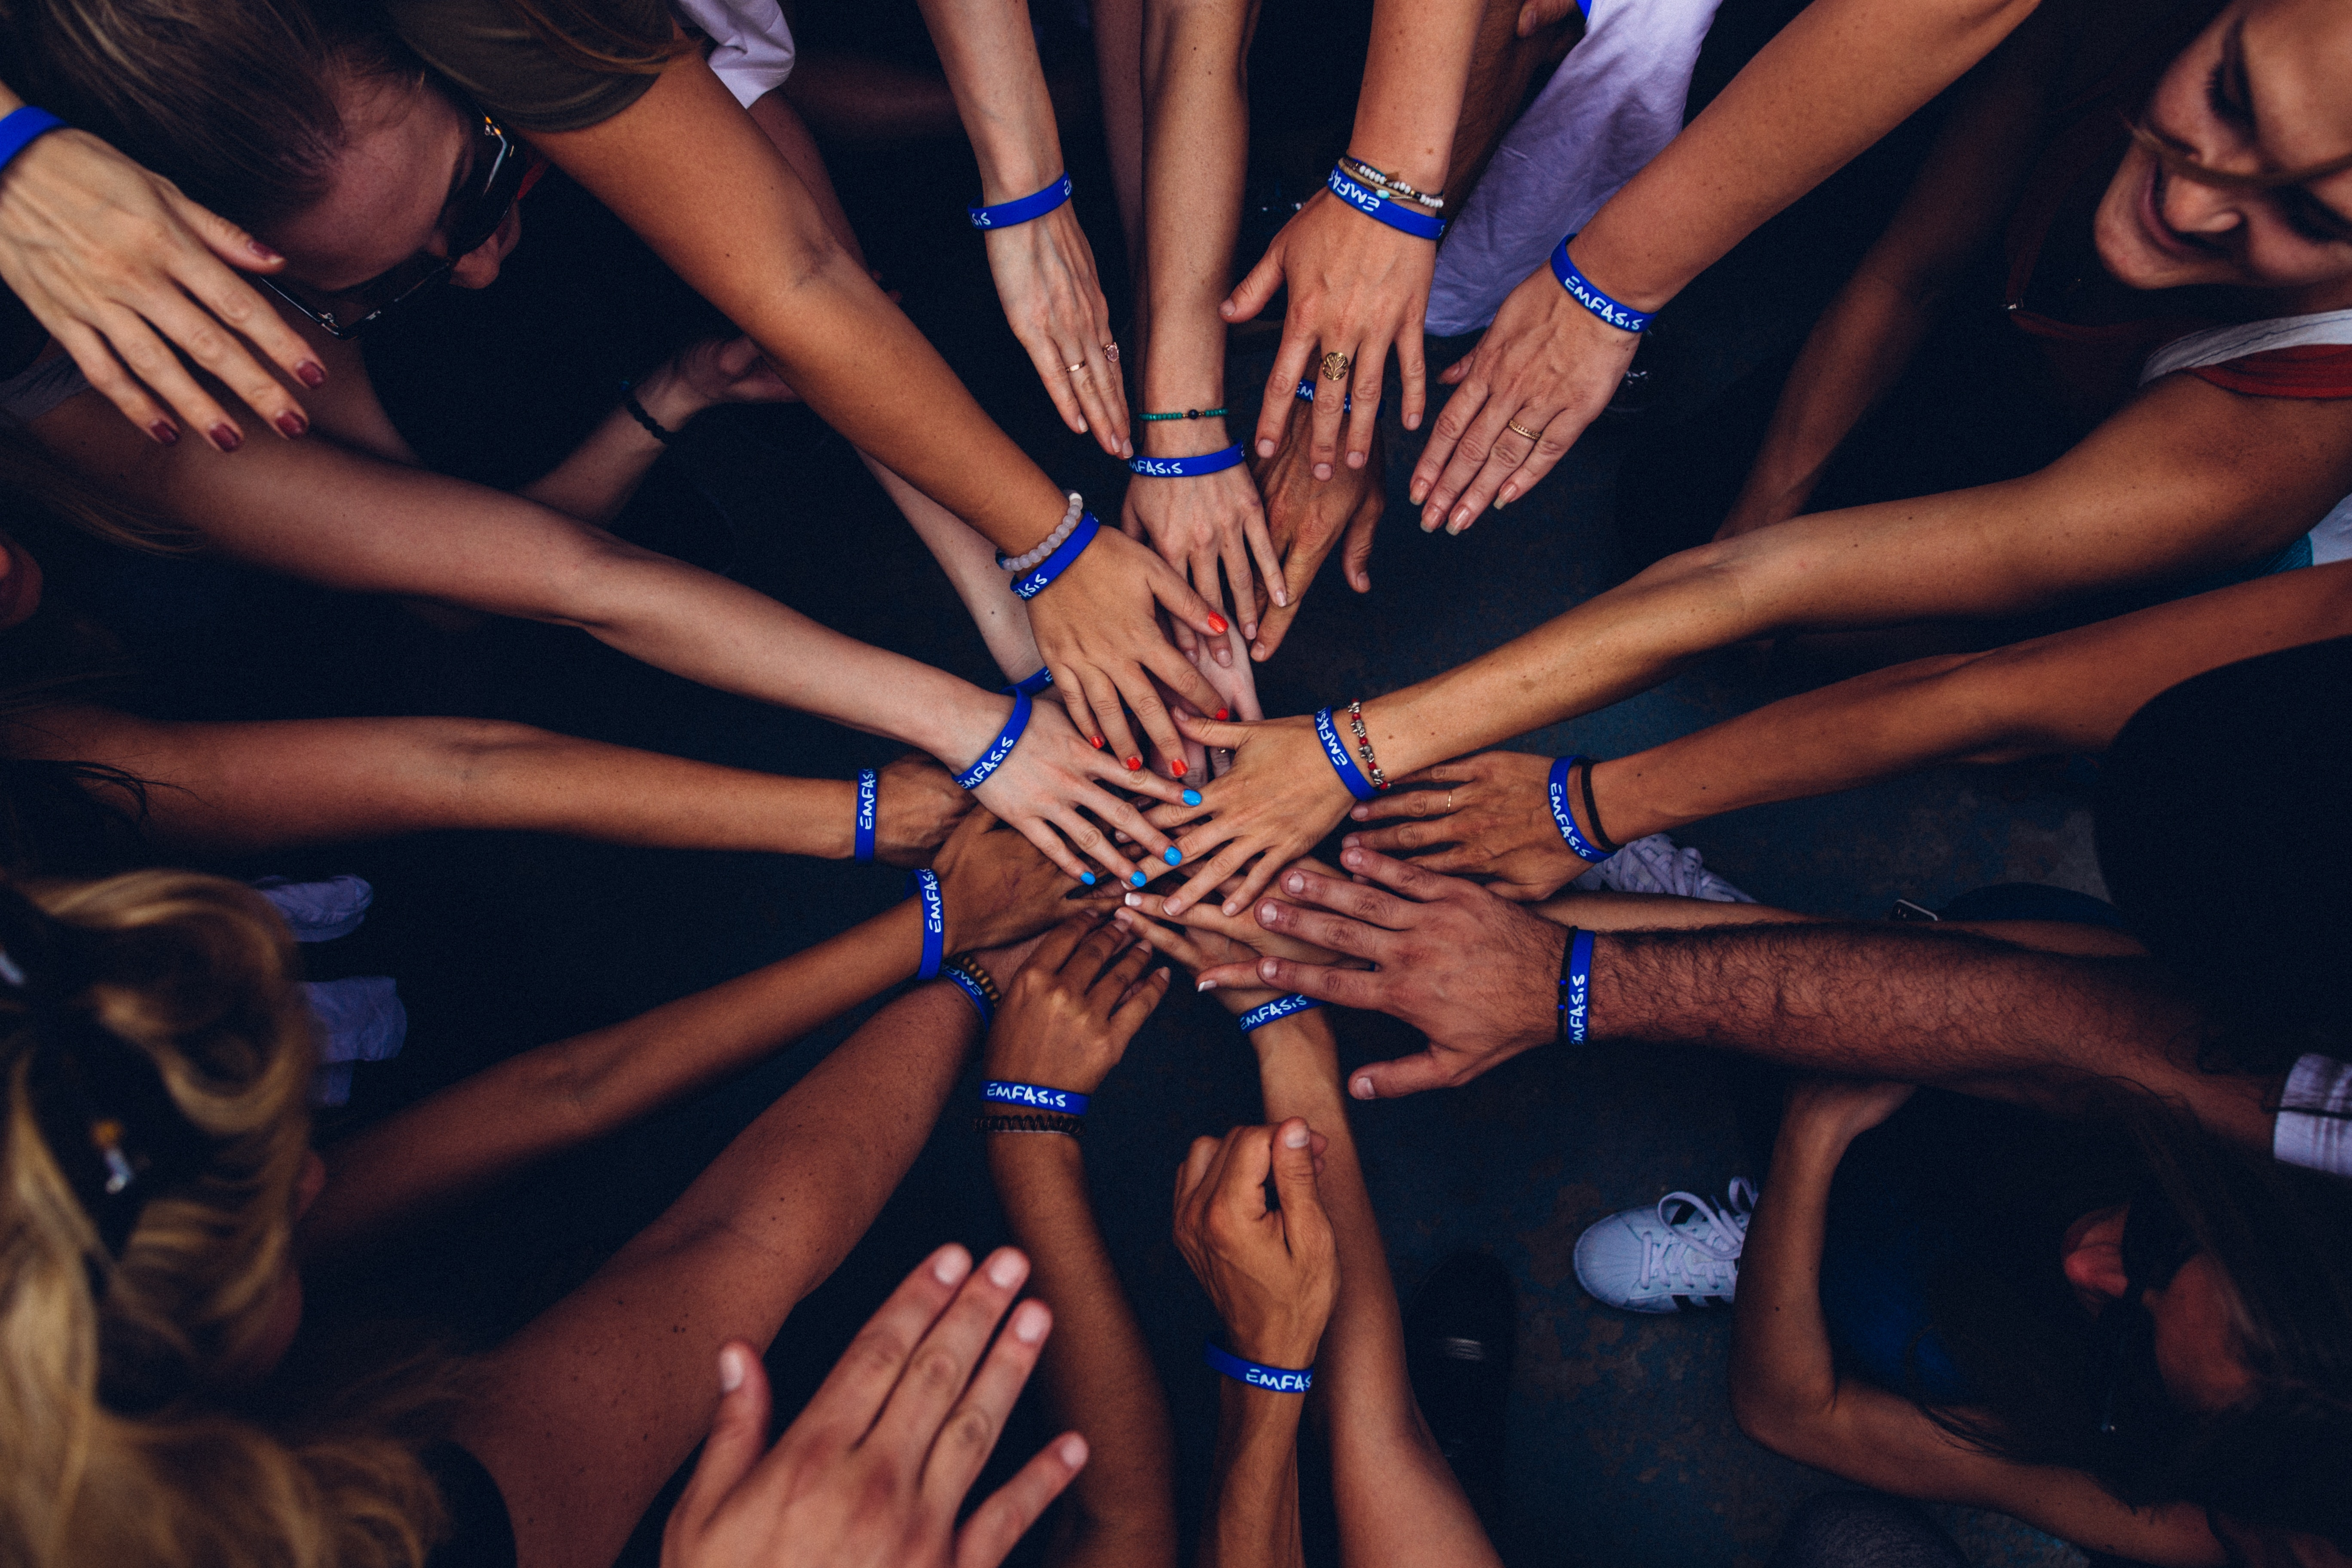 Aerial view of group of people standing in a circle wearing blue silicone bracelets putting their hands together